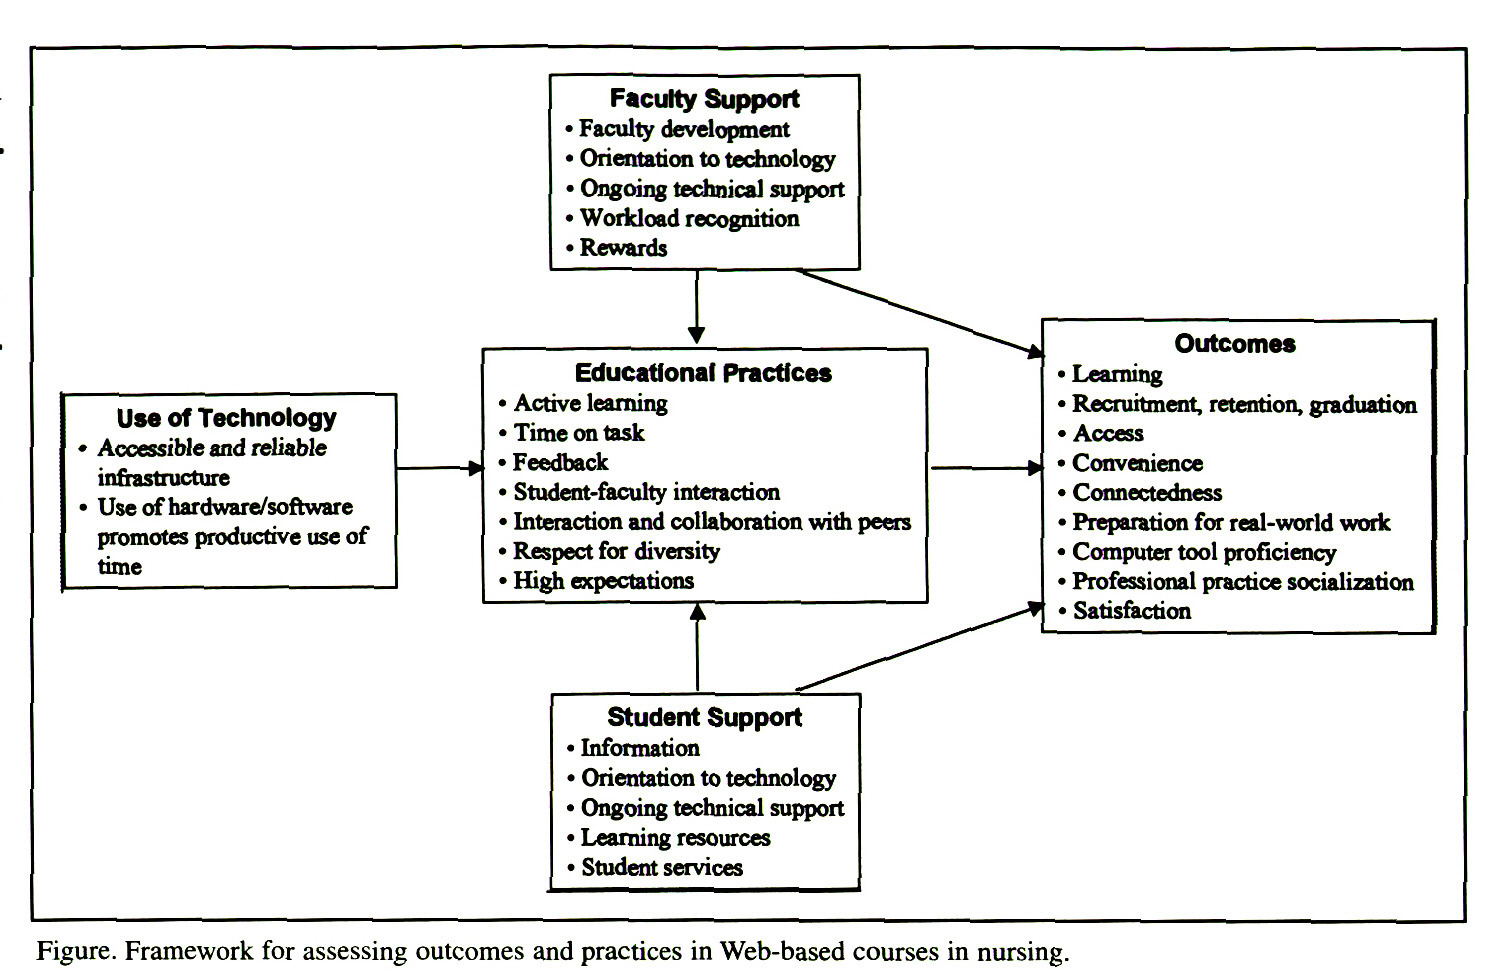 Figure. Framework for assessing outcomes and practices in Web-based courses in nursing.